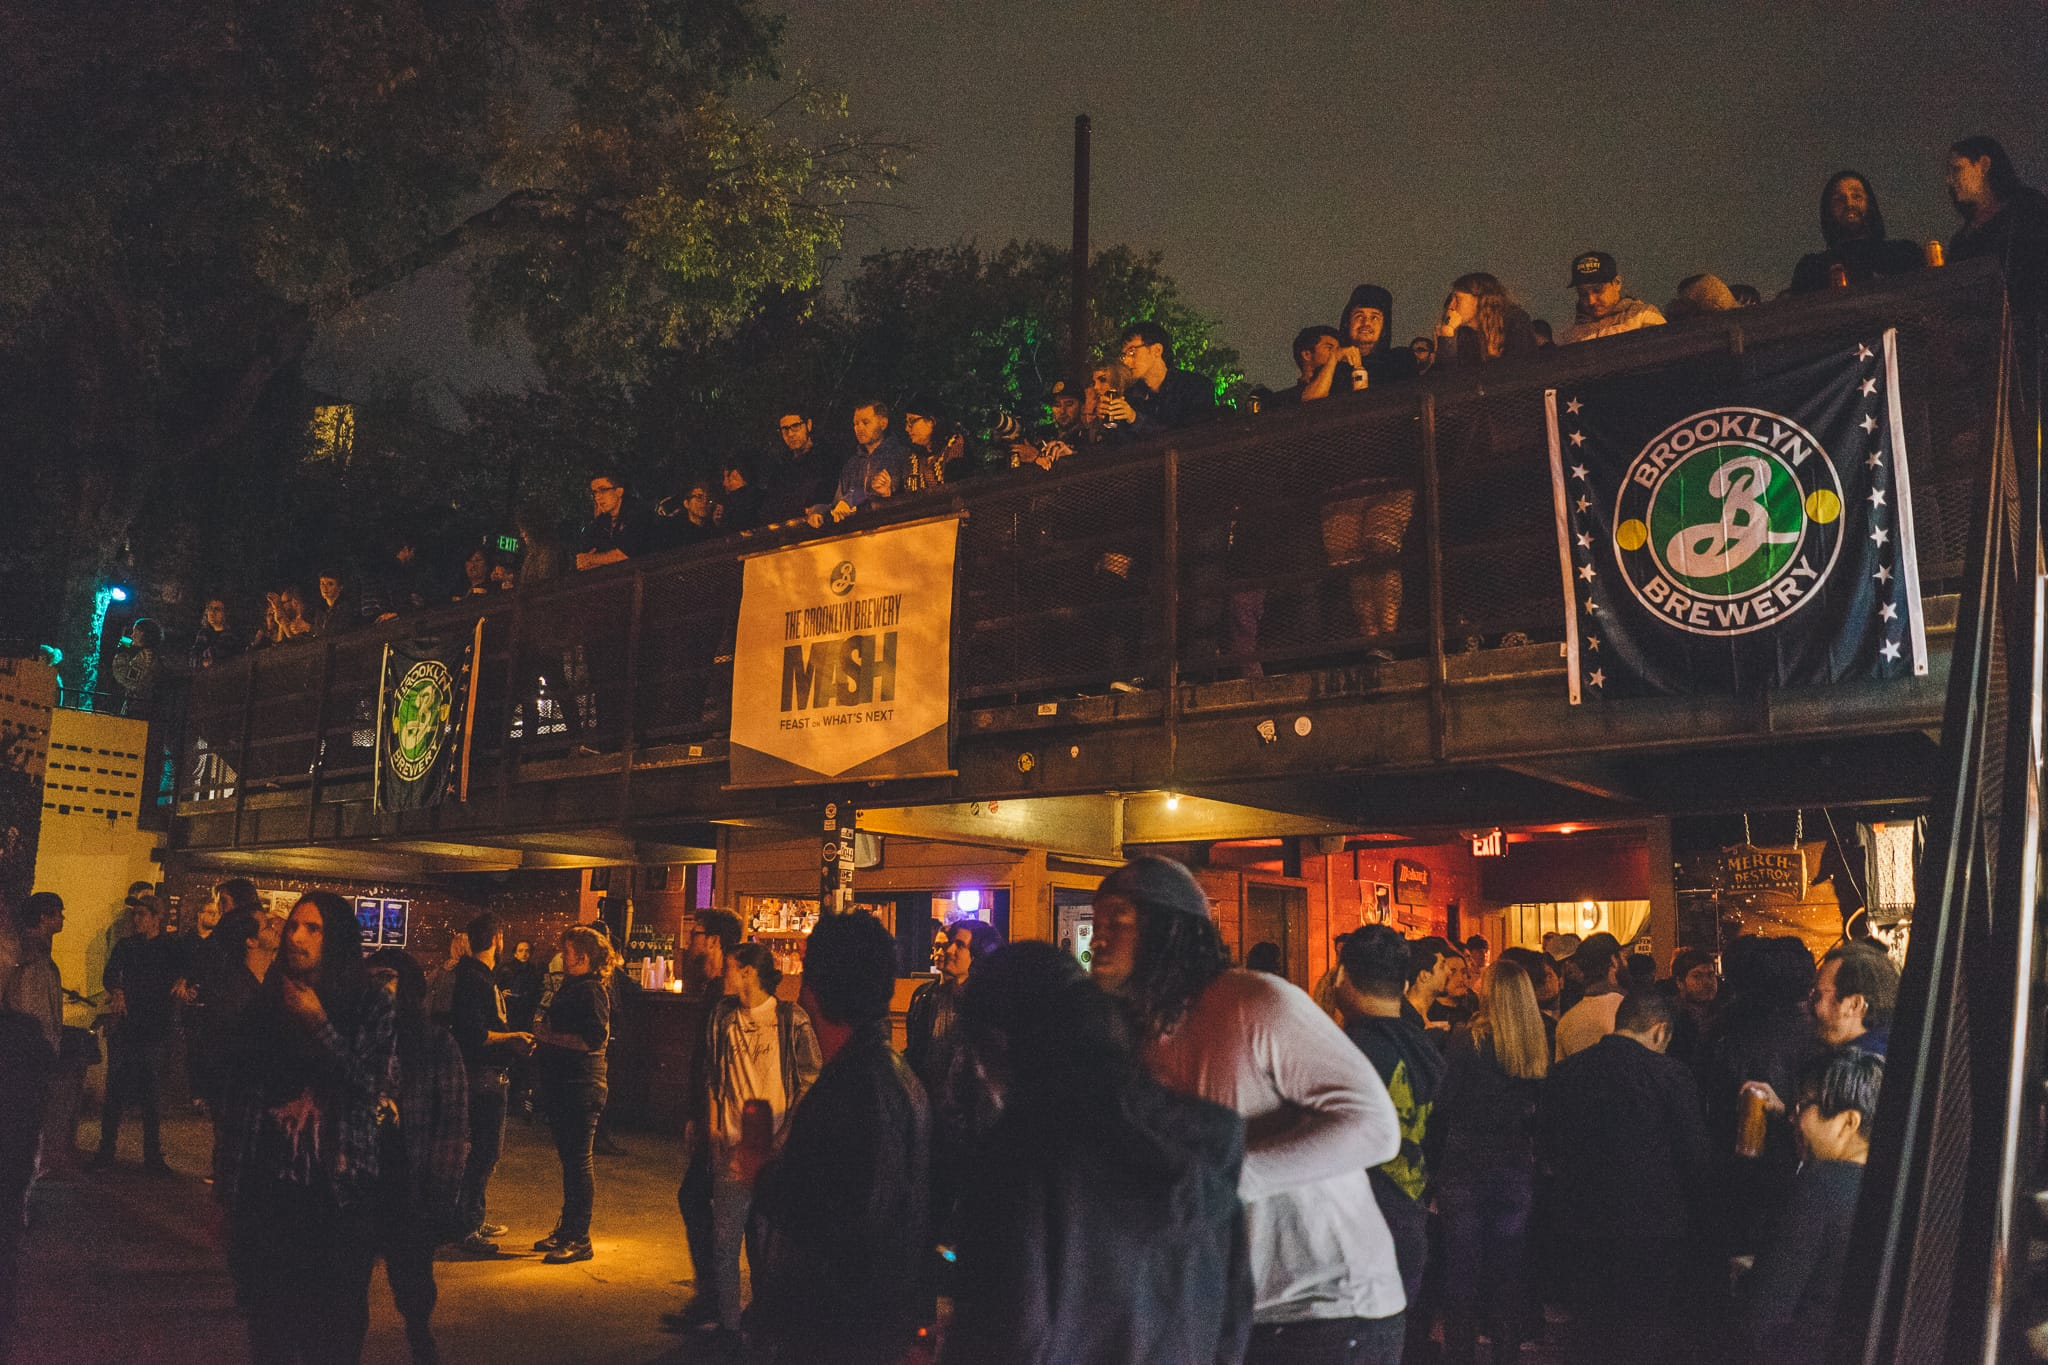 Brooklyn brewery brings the mash tour to london may 11 15 for Craft beer tour london